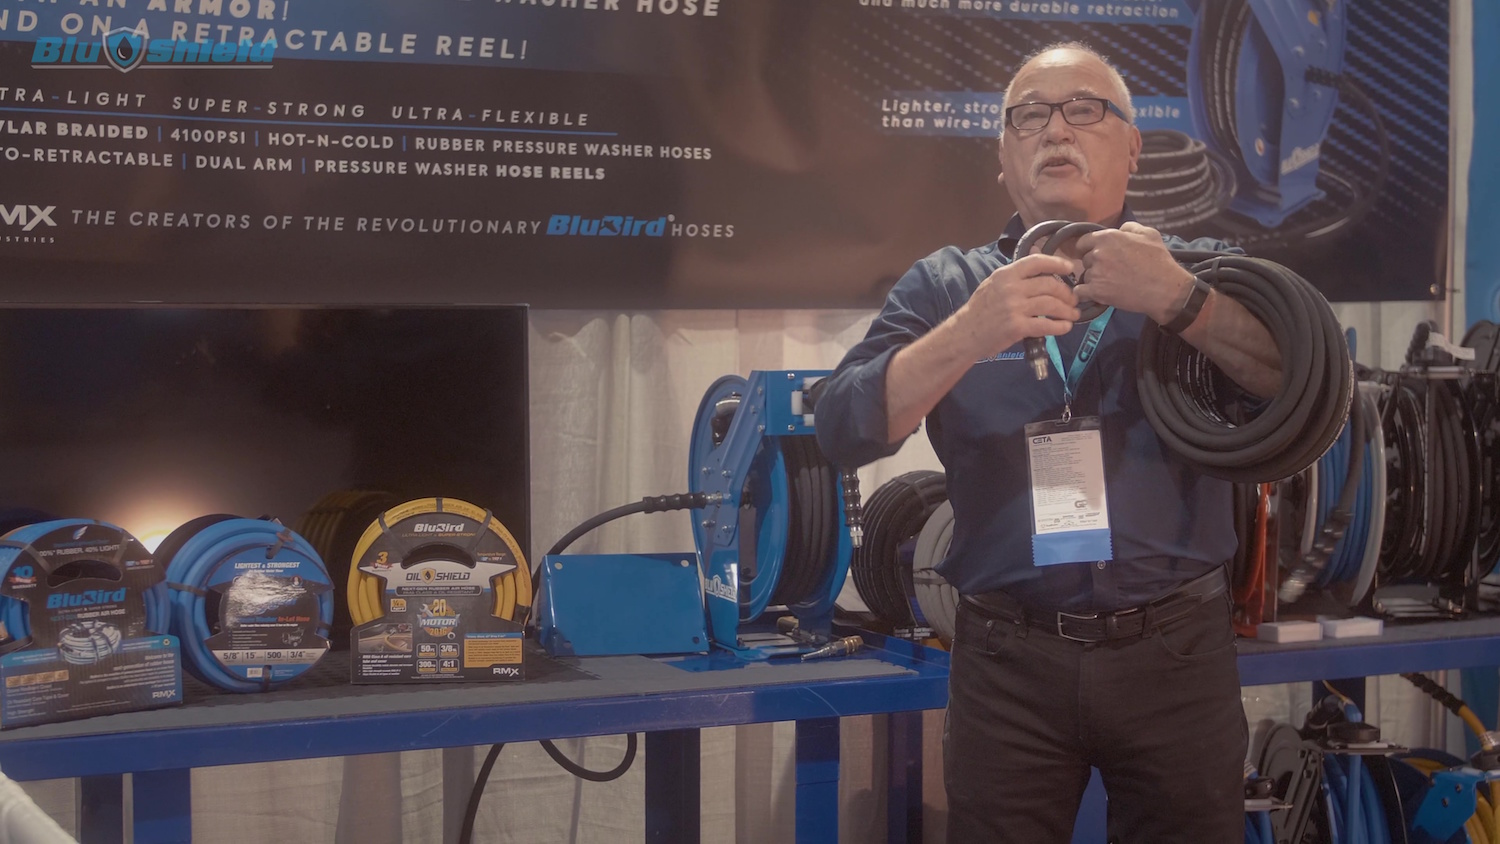 BluShield Kevlar-braided Pressure Washer Hoses and Reels – Introduction